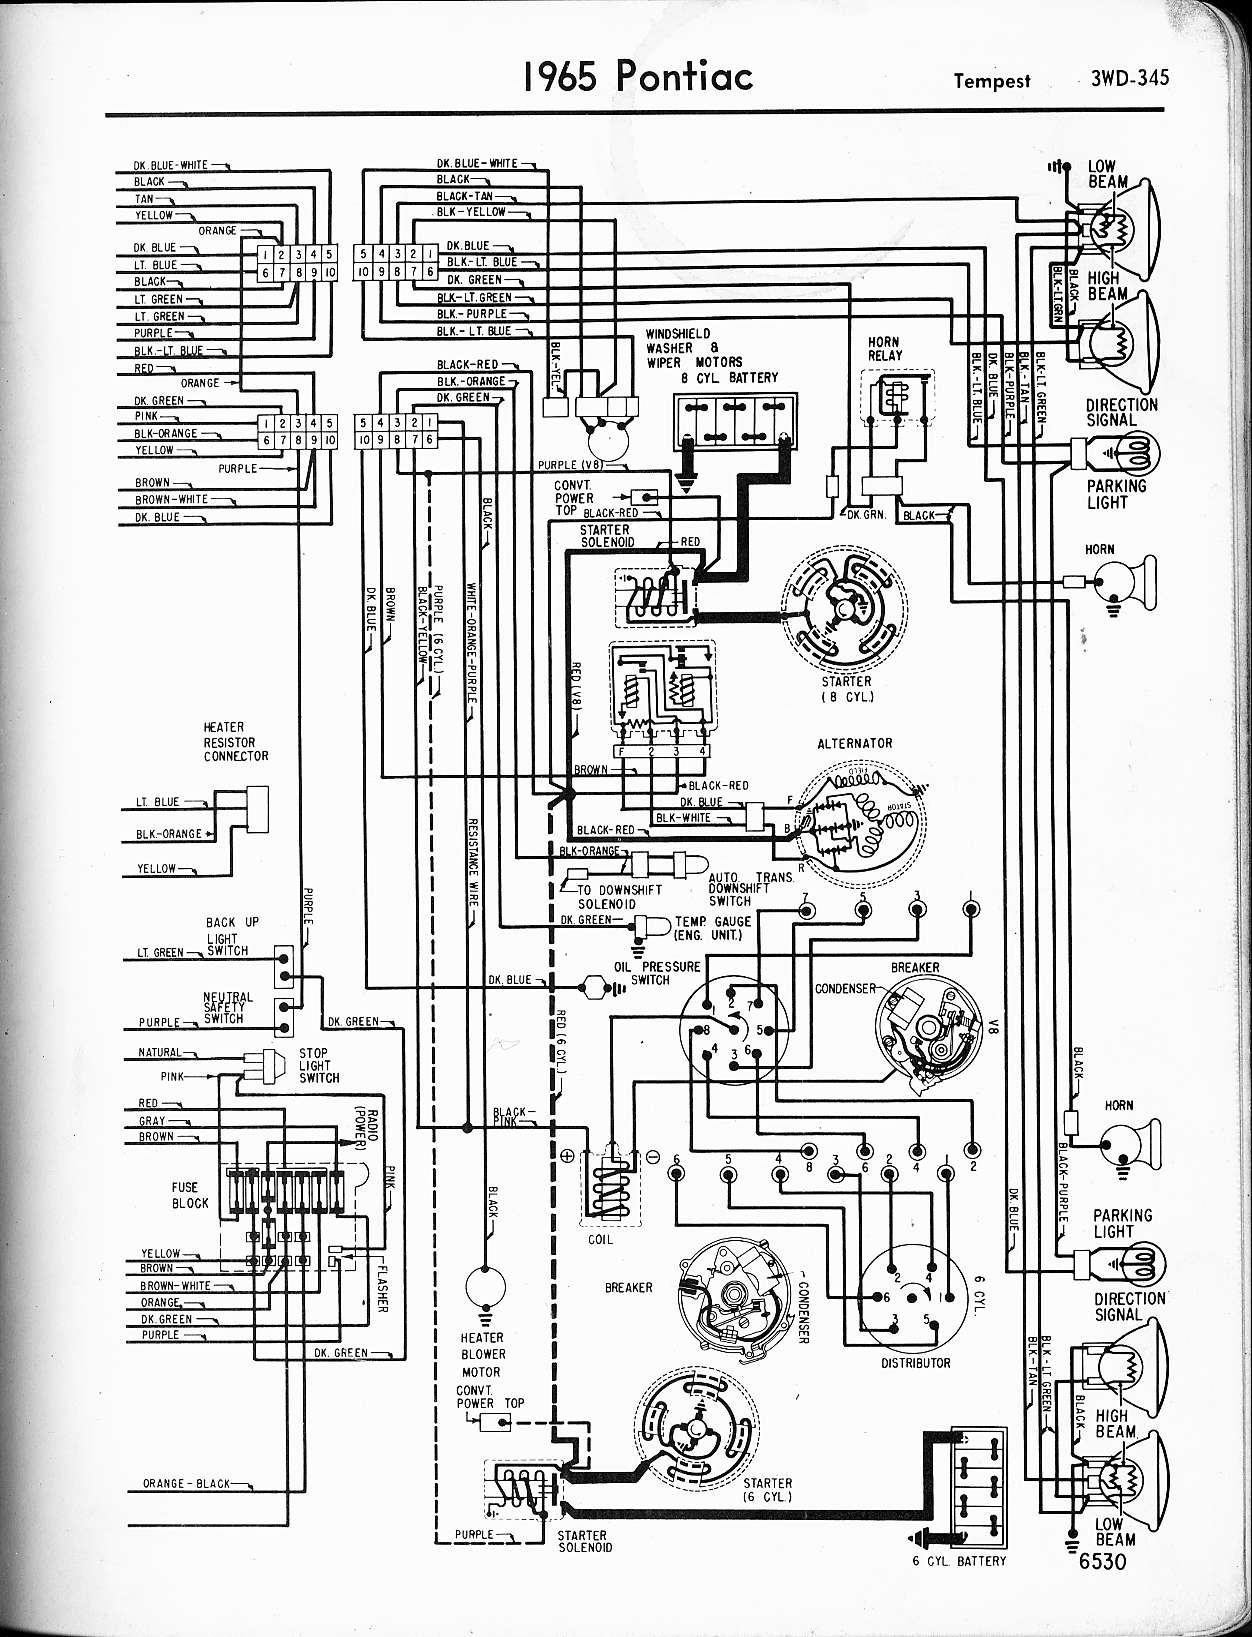 1965 lemans wiring diagram 1965 lemans wiring harness